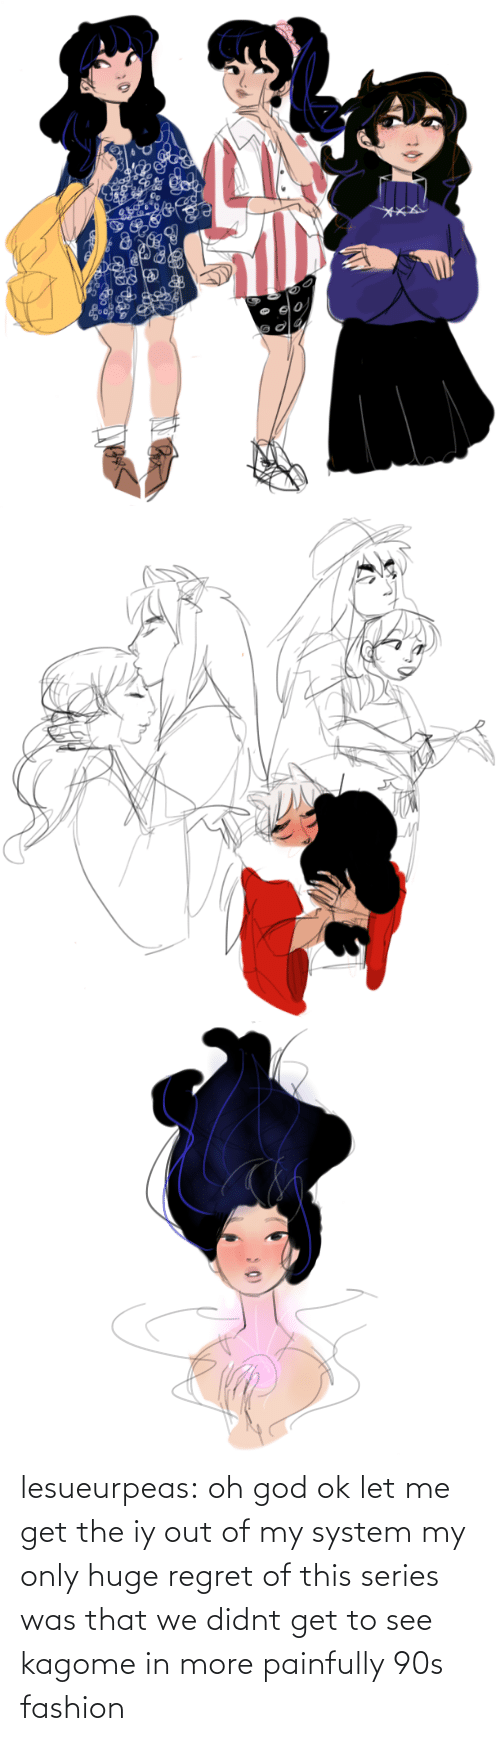 Regret: lesueurpeas:  oh god ok let me get the iy out of my system my only huge regret of this series was that we didnt get to see kagome in more painfully 90s fashion